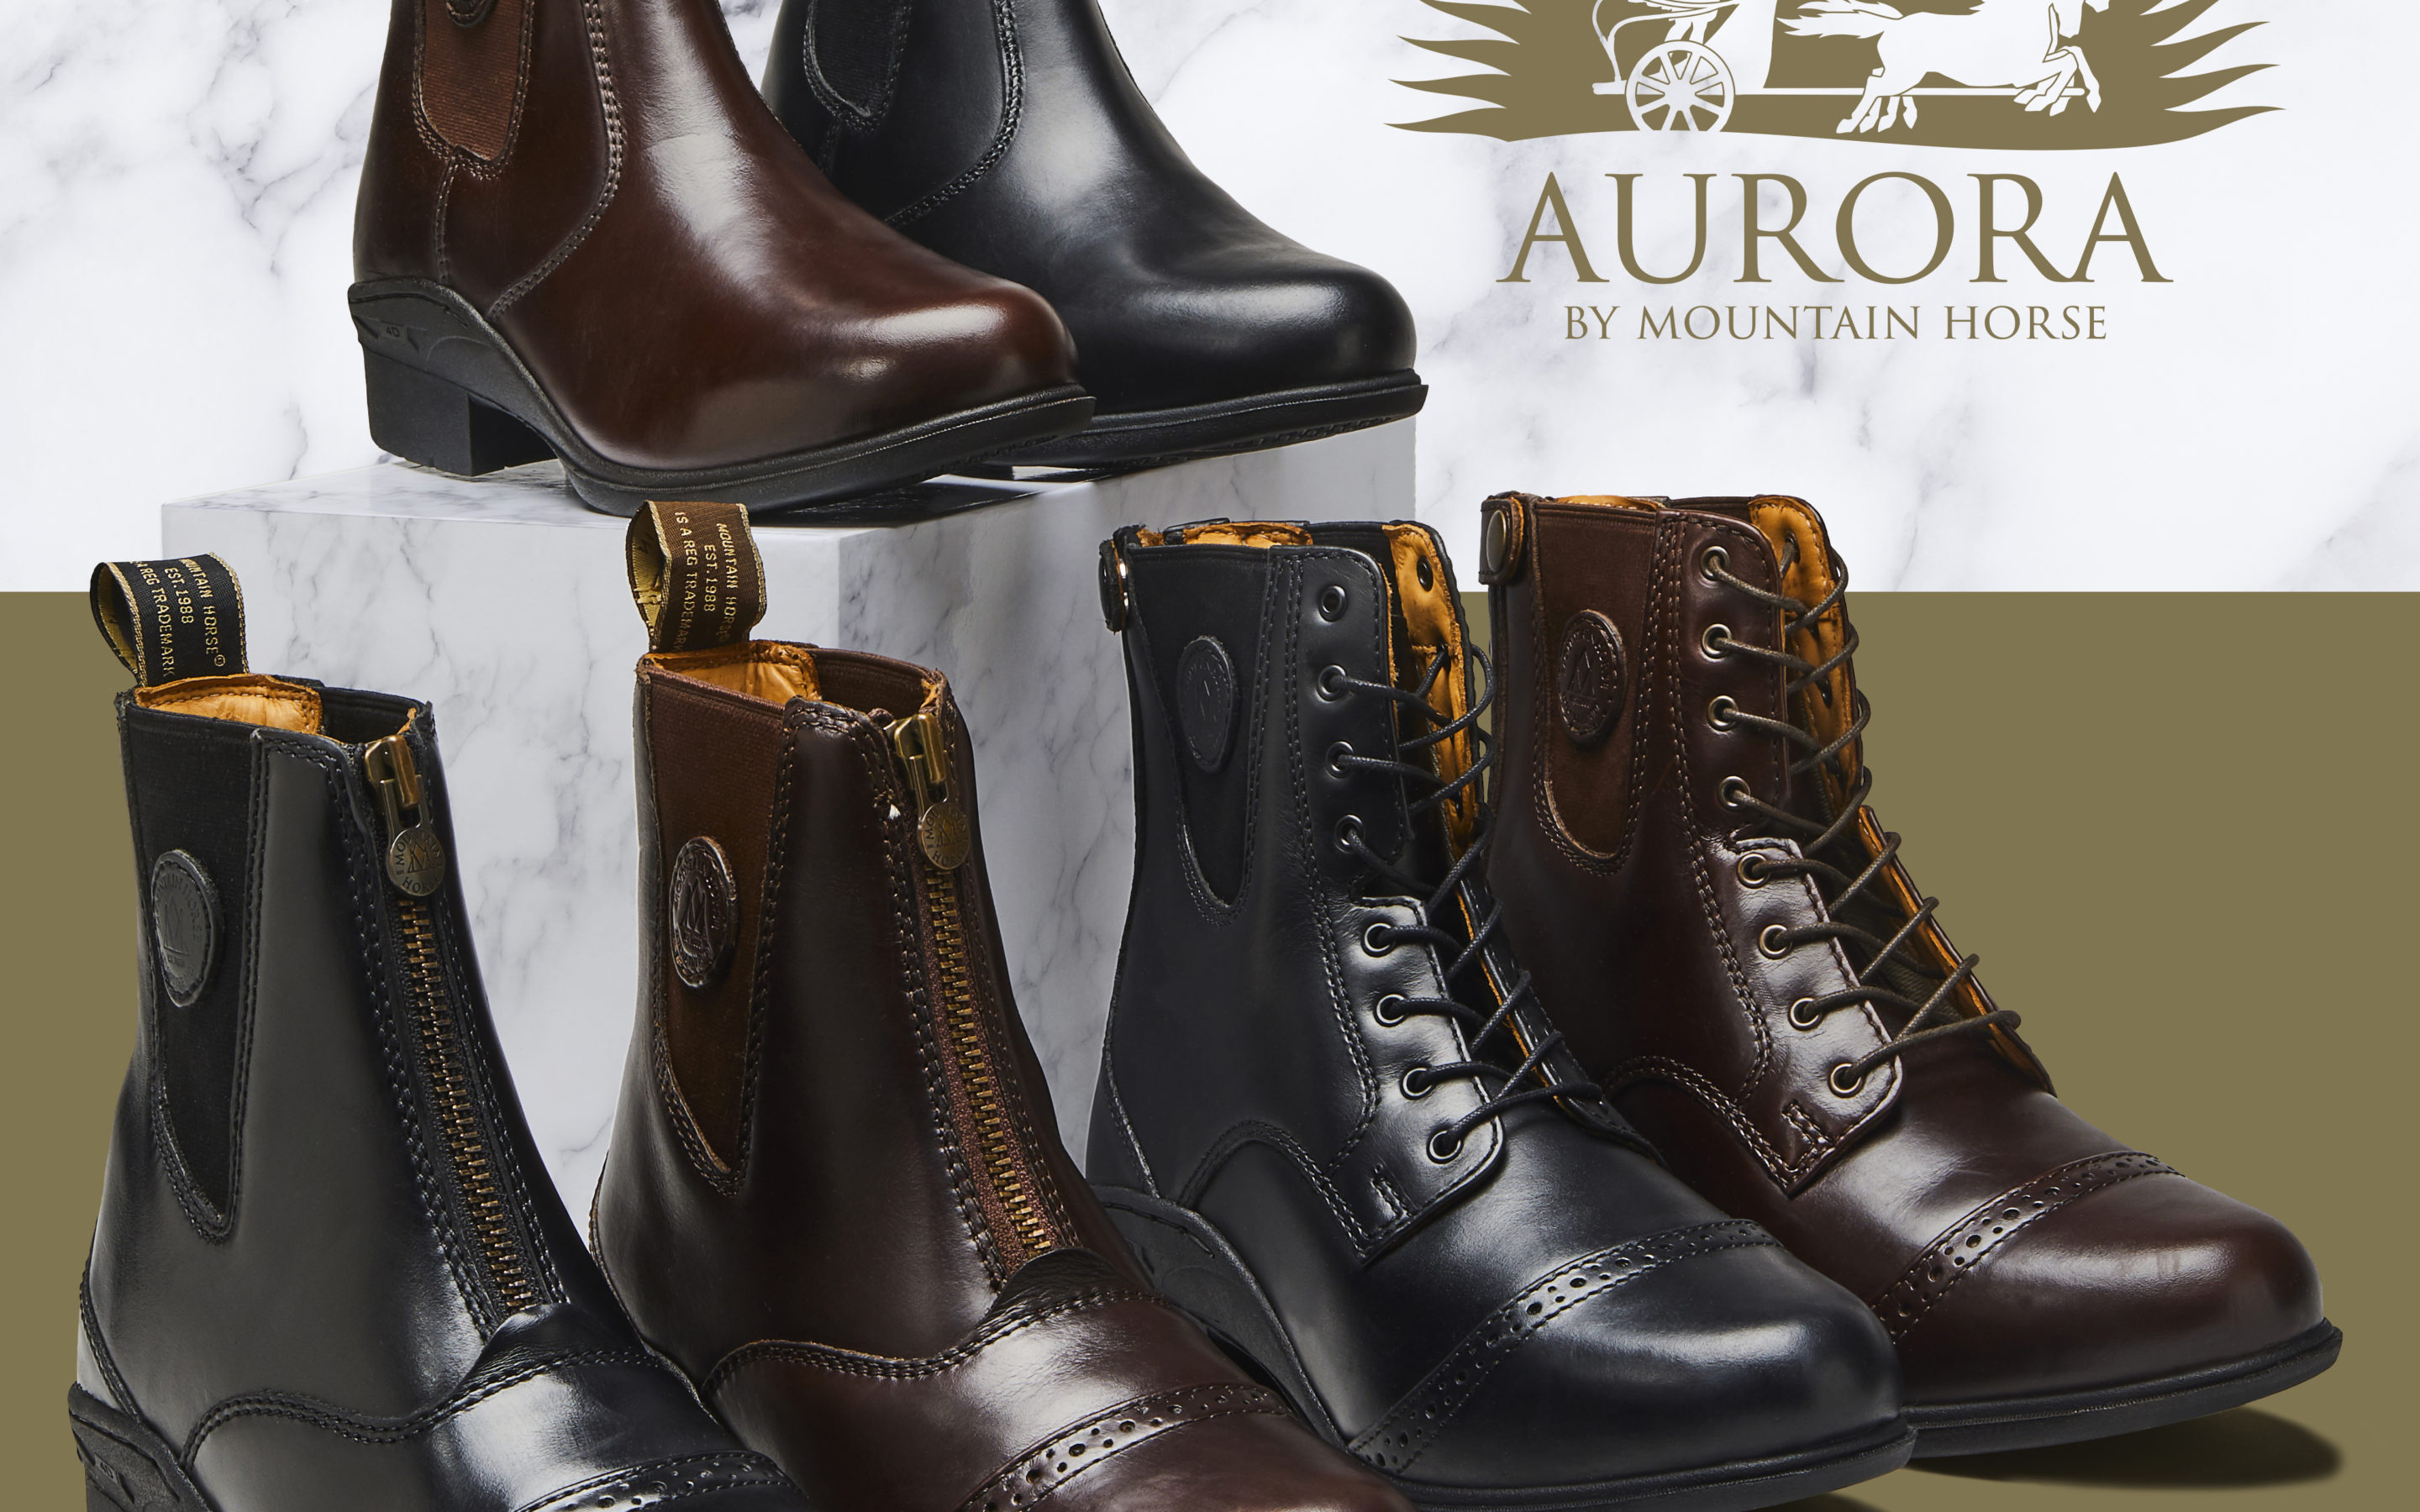 The Aurora Boot from Mountain Horse